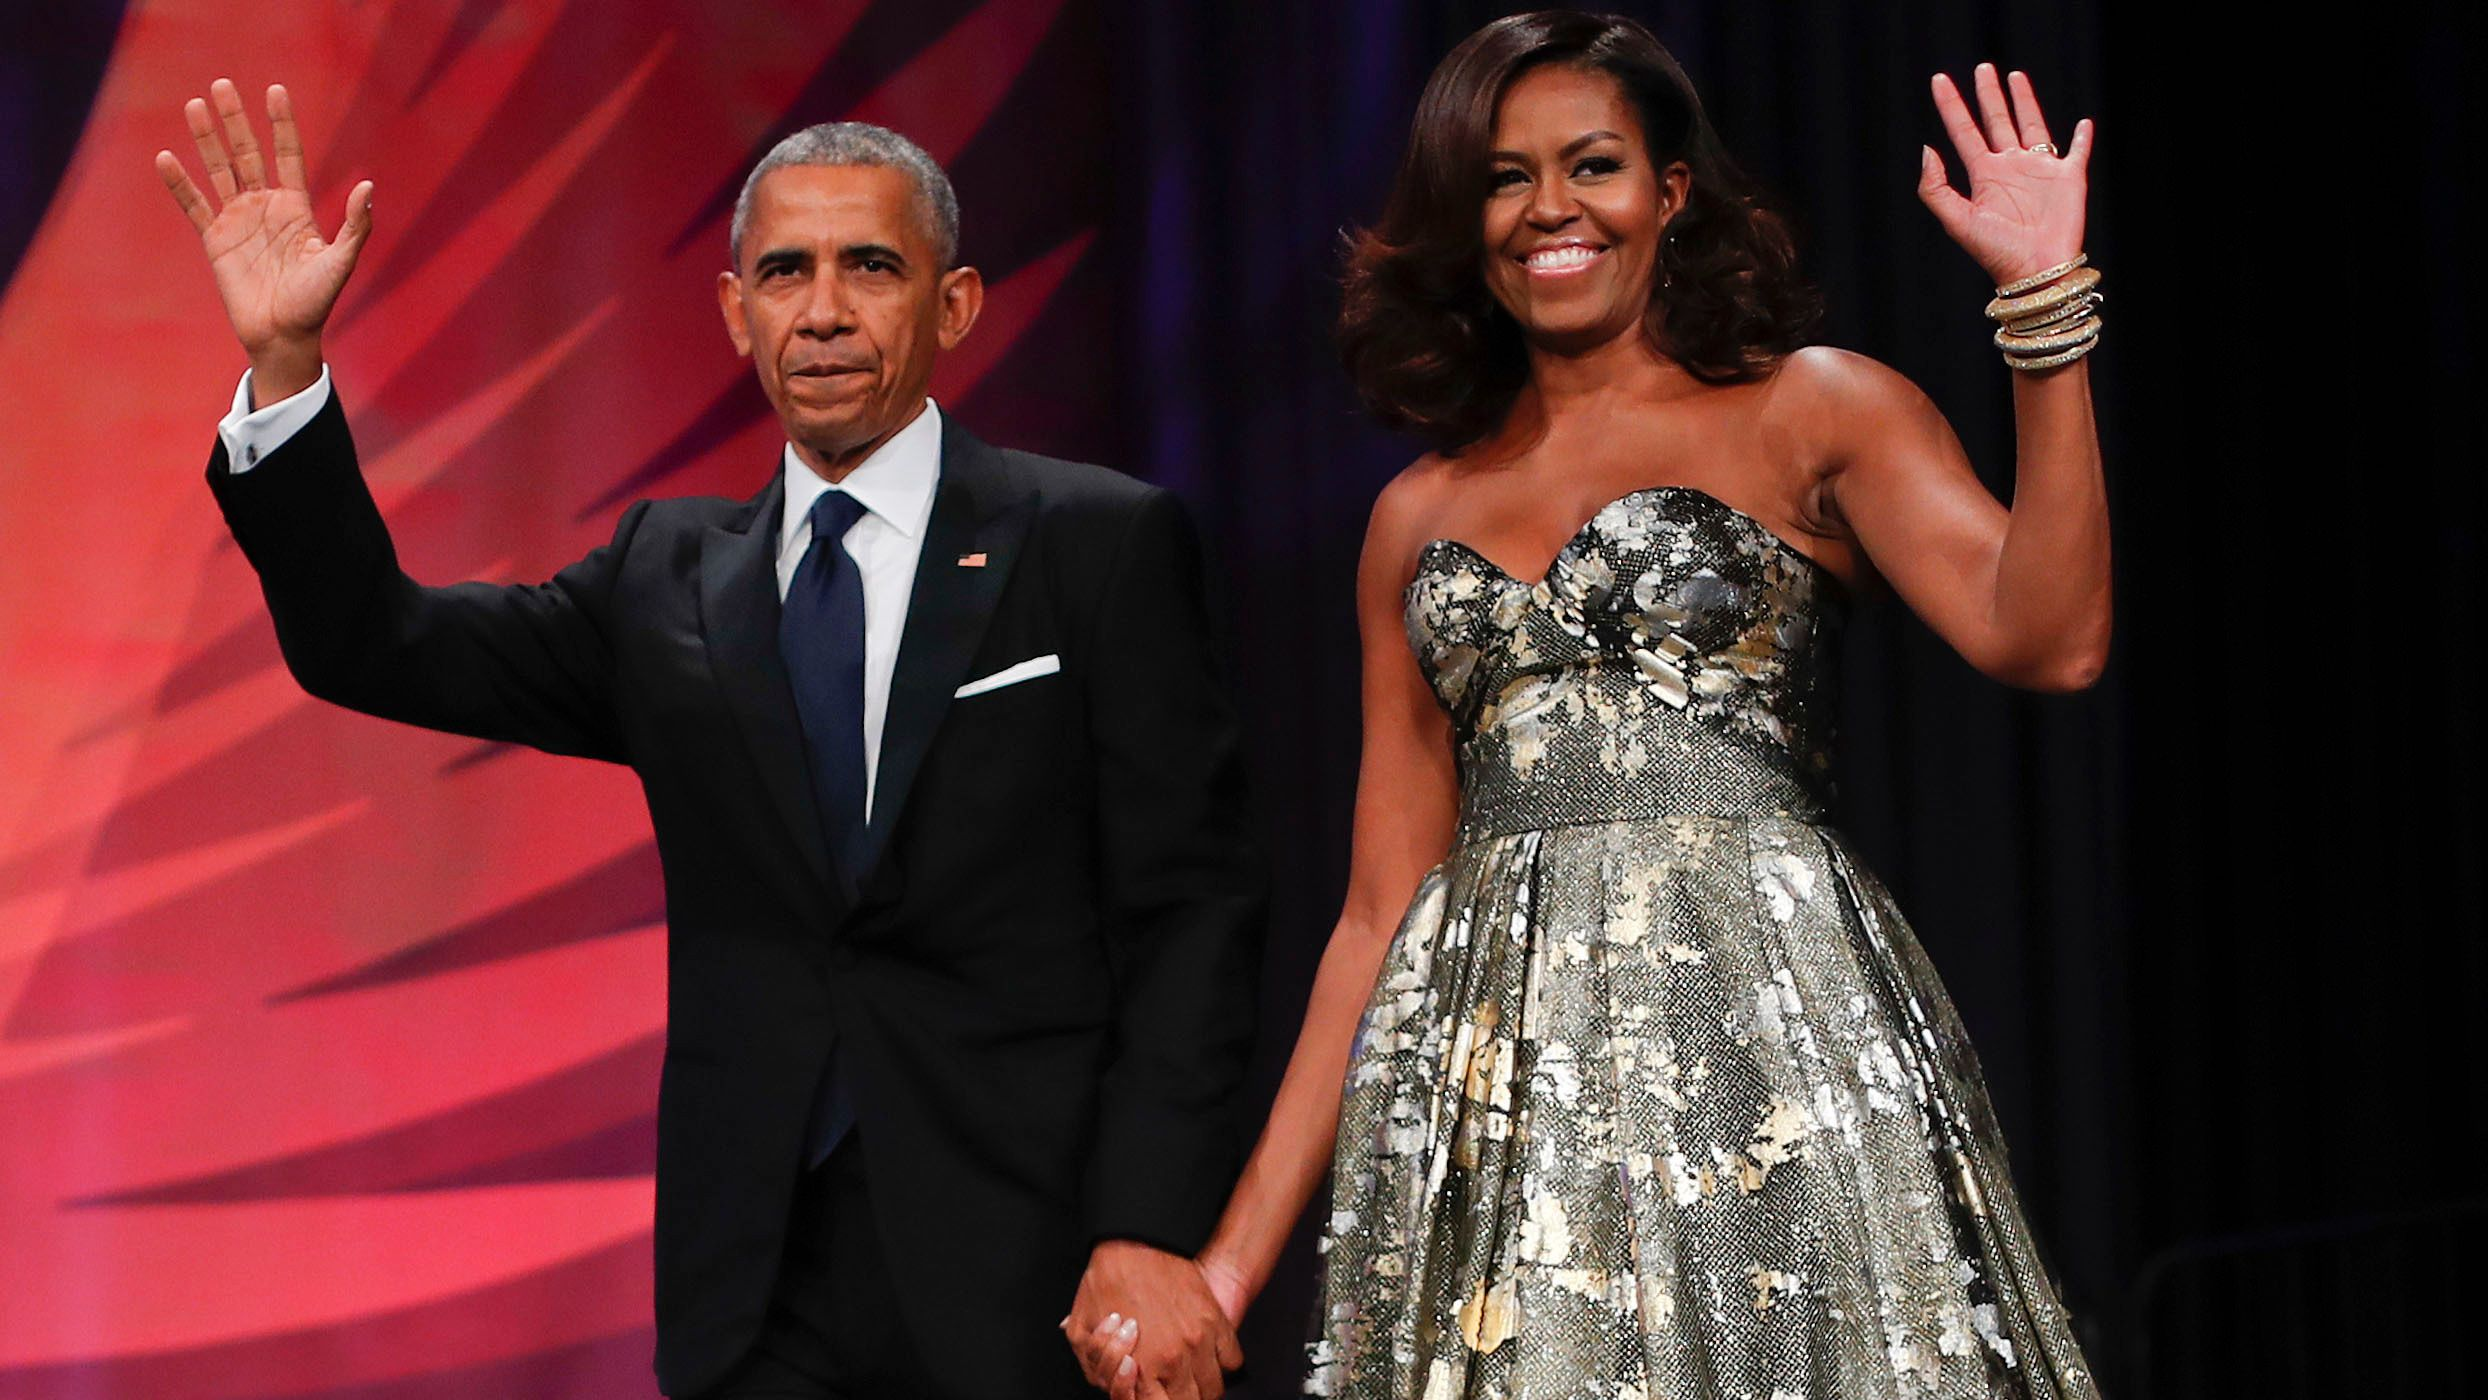 FILE - This Sept. 17, 2016 file photo shows President Barack Obama and first lady Michelle Obama at the Congressional Black Caucus Foundation's 46th Annual Legislative Conference Phoenix Awards Dinner in Washington. The former president and first lady have signed with Penguin Random House, the publisher announced Tuesday, Feb. 28, 2017. (AP Photo/Pablo Martinez Monsivais, File)